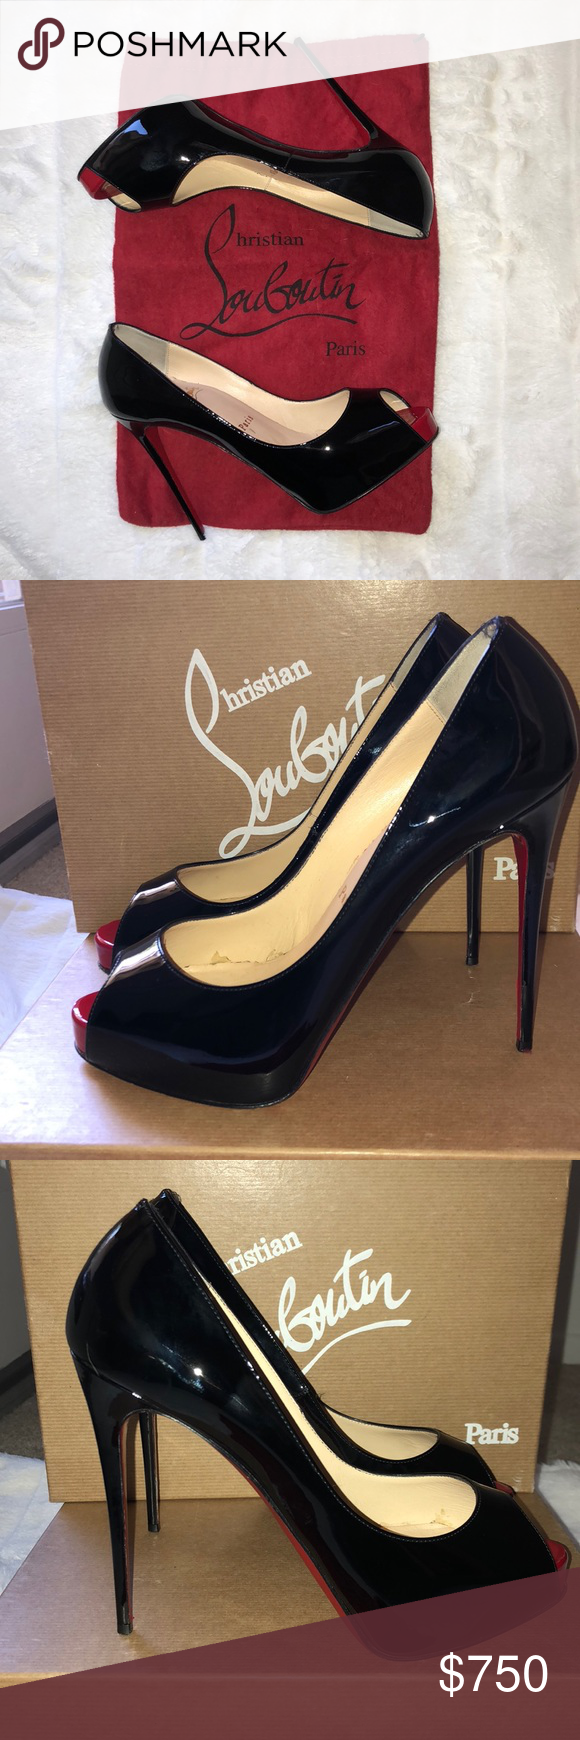 da99bd7db11 Authentic Louboutin New Very Prive 💯 % AUTHENTIC Christian ...